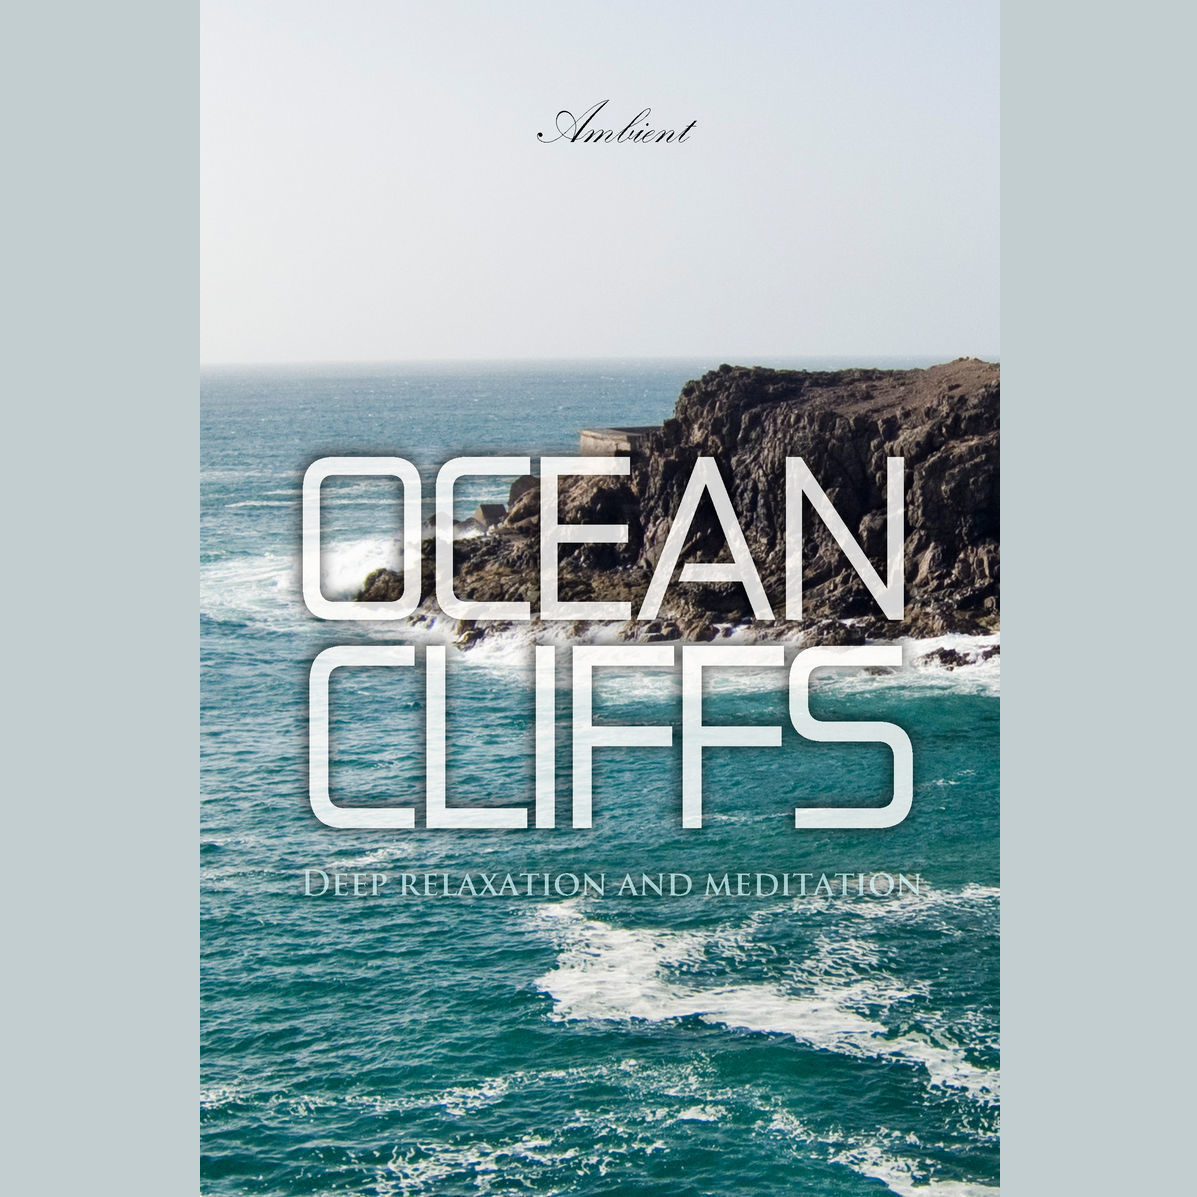 Printable Ocean Cliffs: Deep relaxation and meditation Audiobook Cover Art